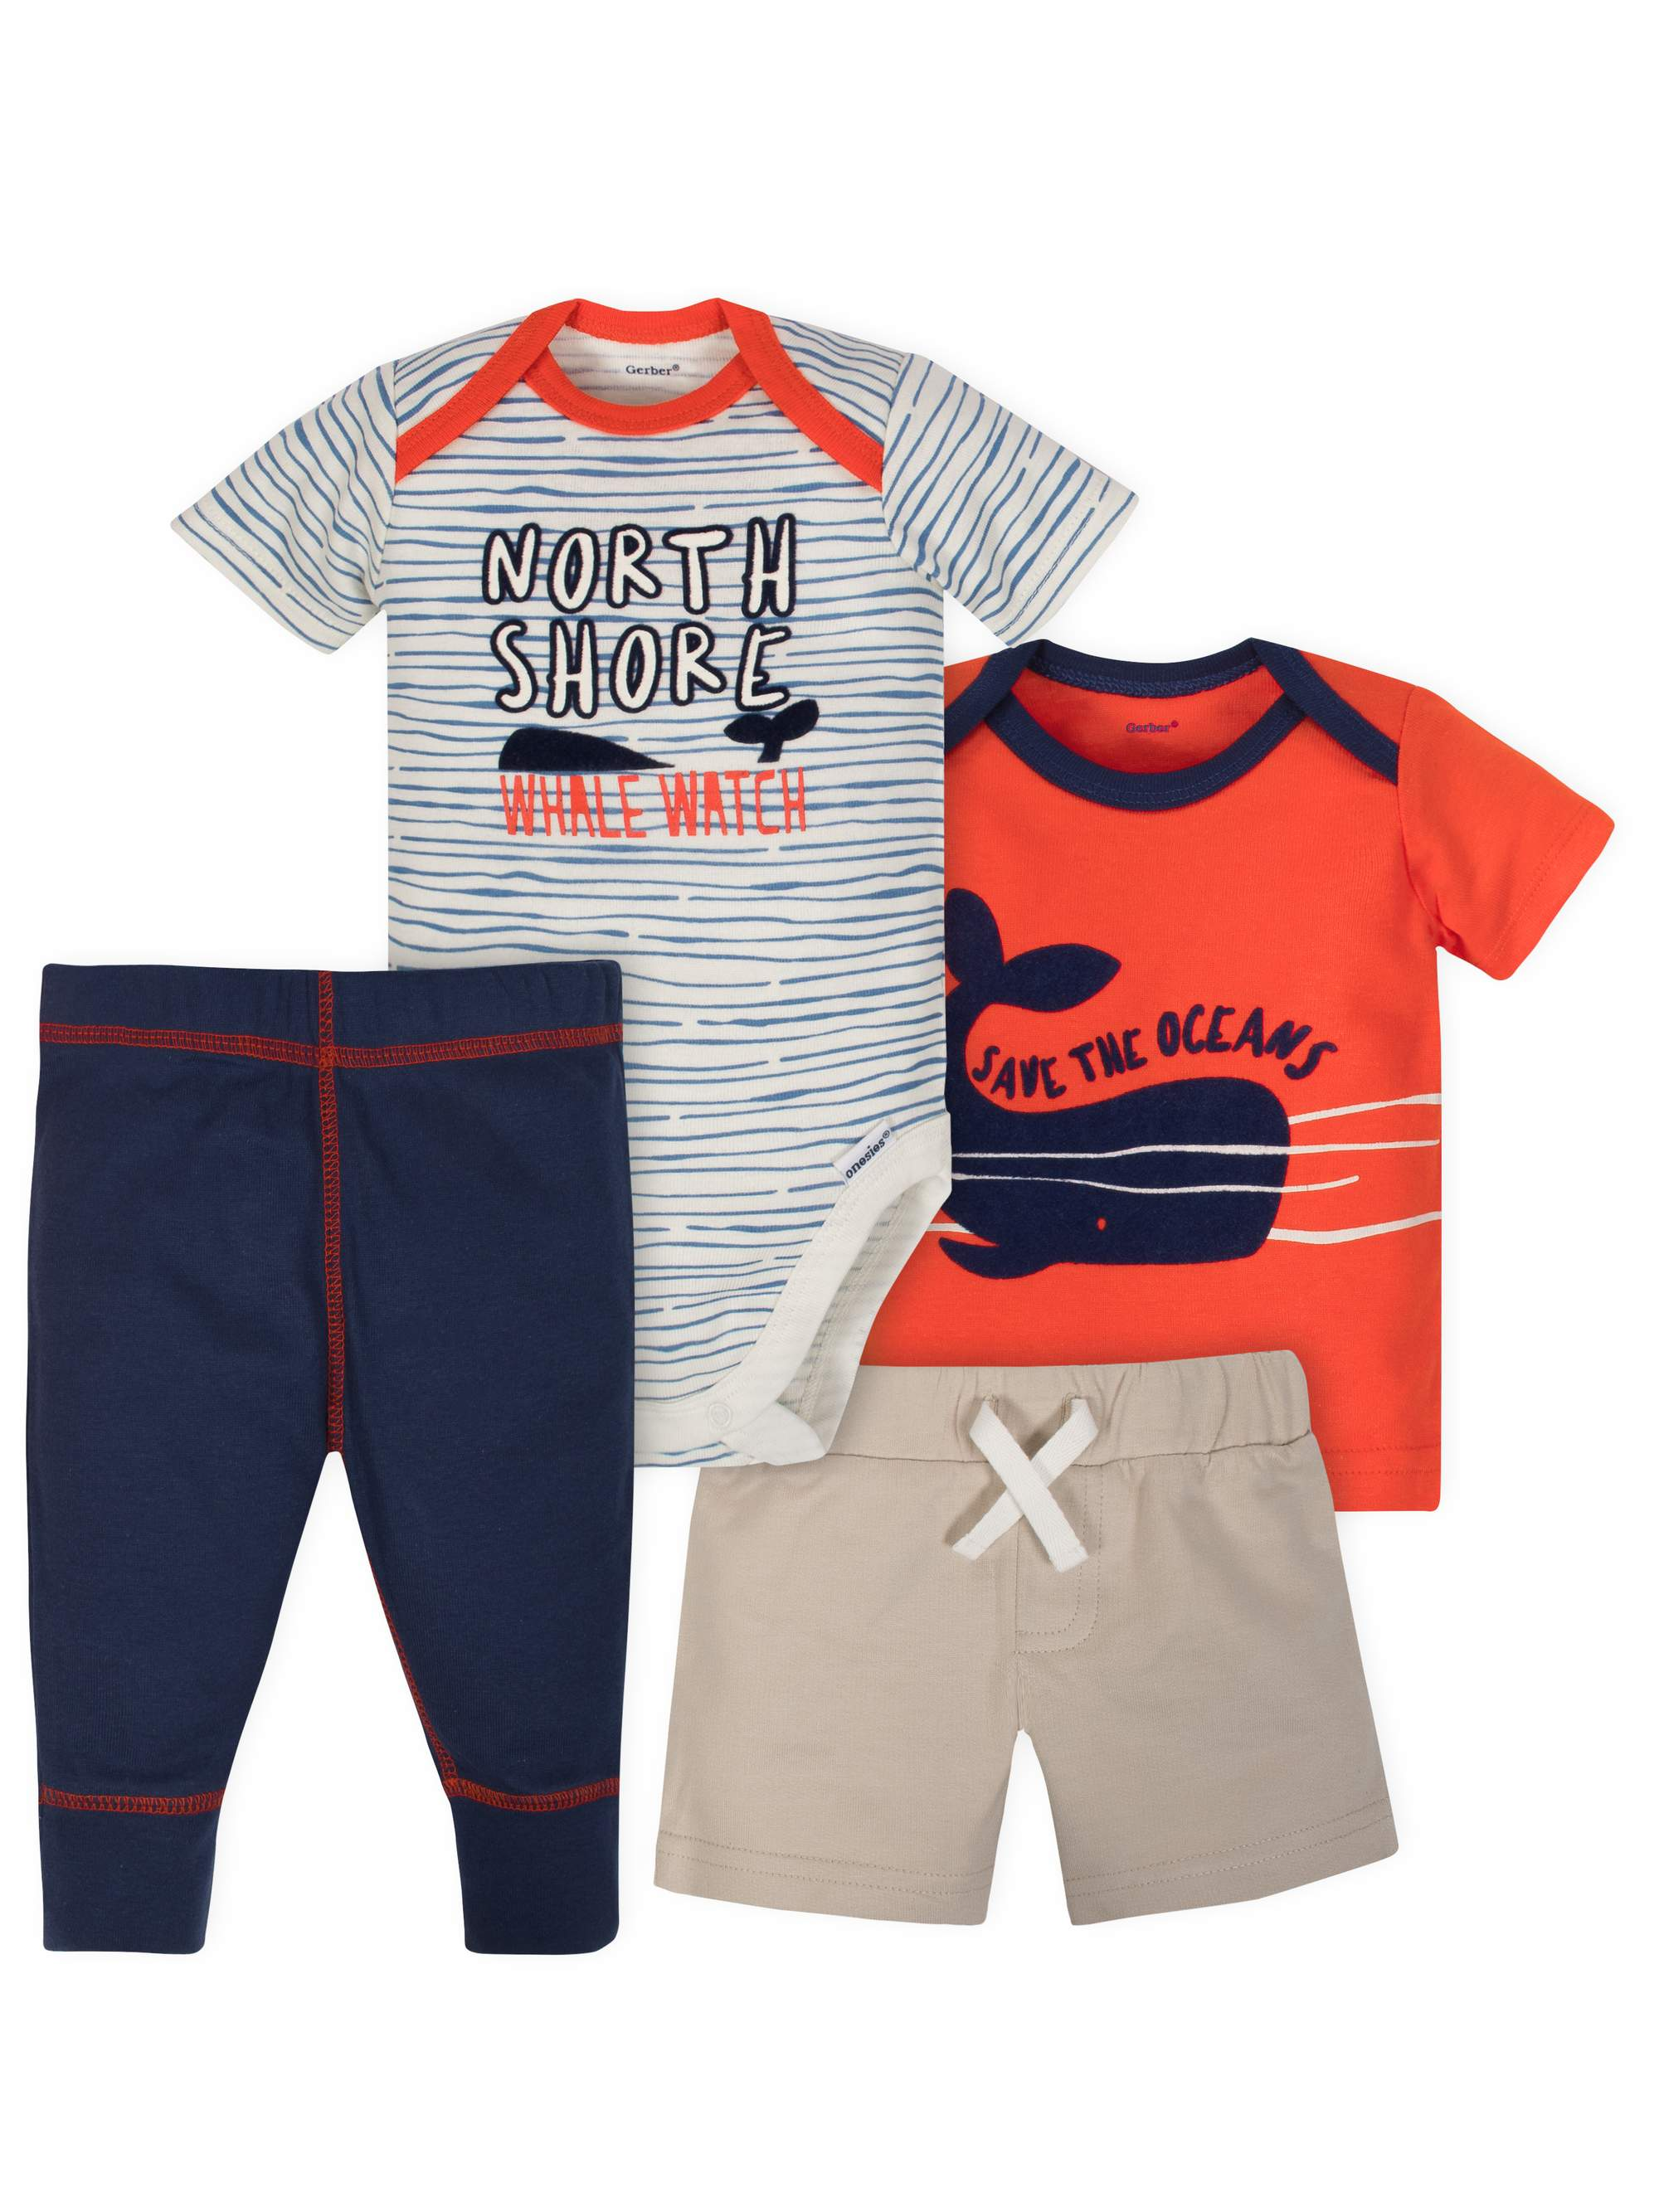 Bodysuit, Shirt, Short and Pant Mix N Match Outfit Set, 4pc (Baby Boys)